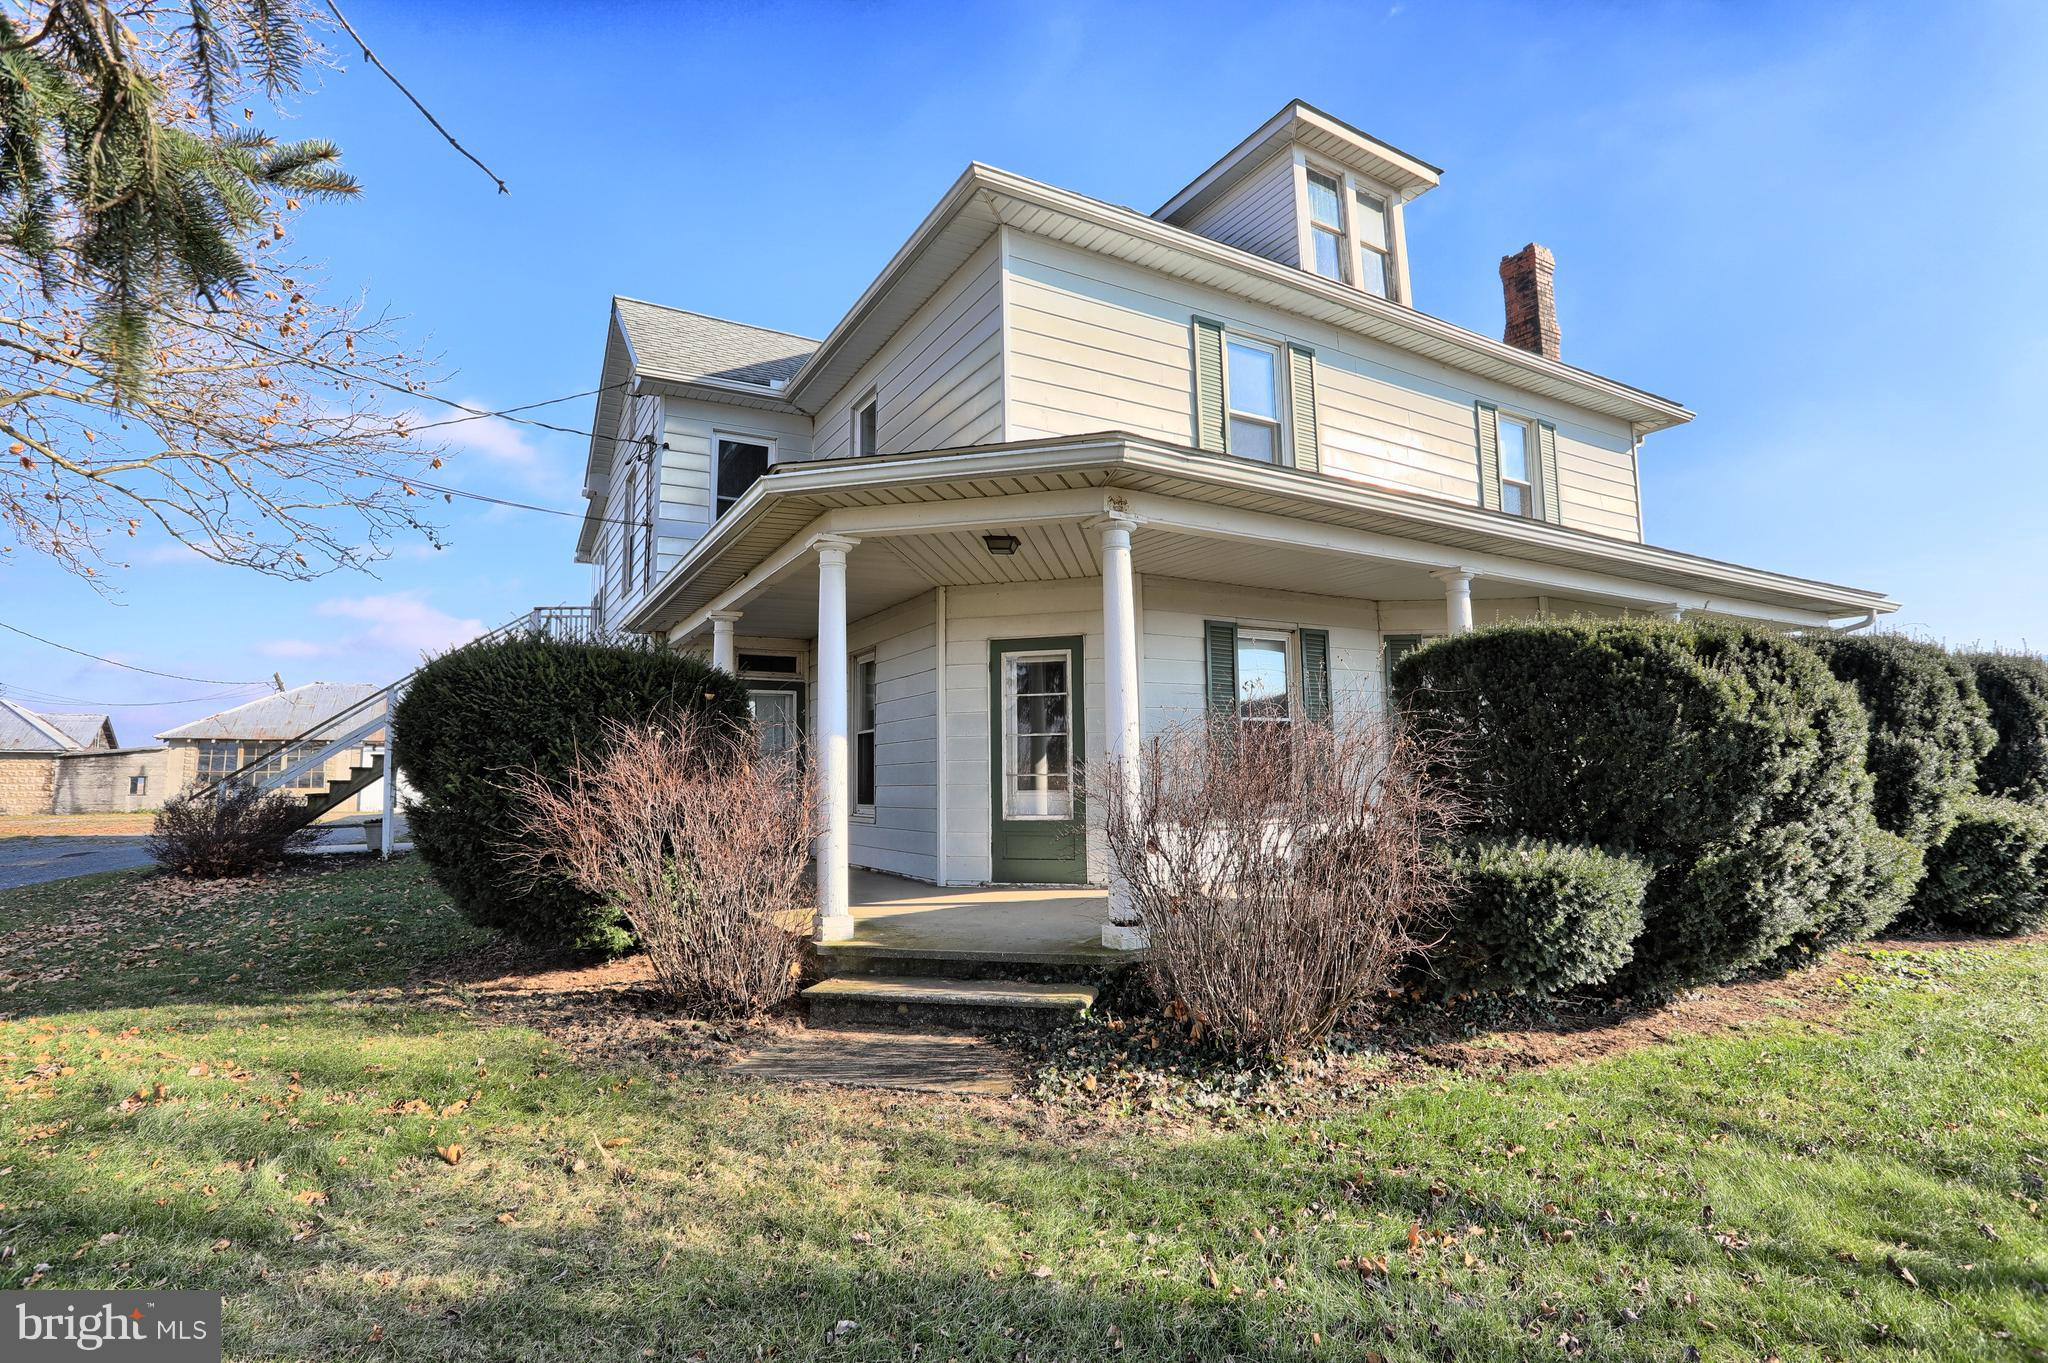 303 N DRYHOUSE ROAD, BELLEVILLE, PA 17004